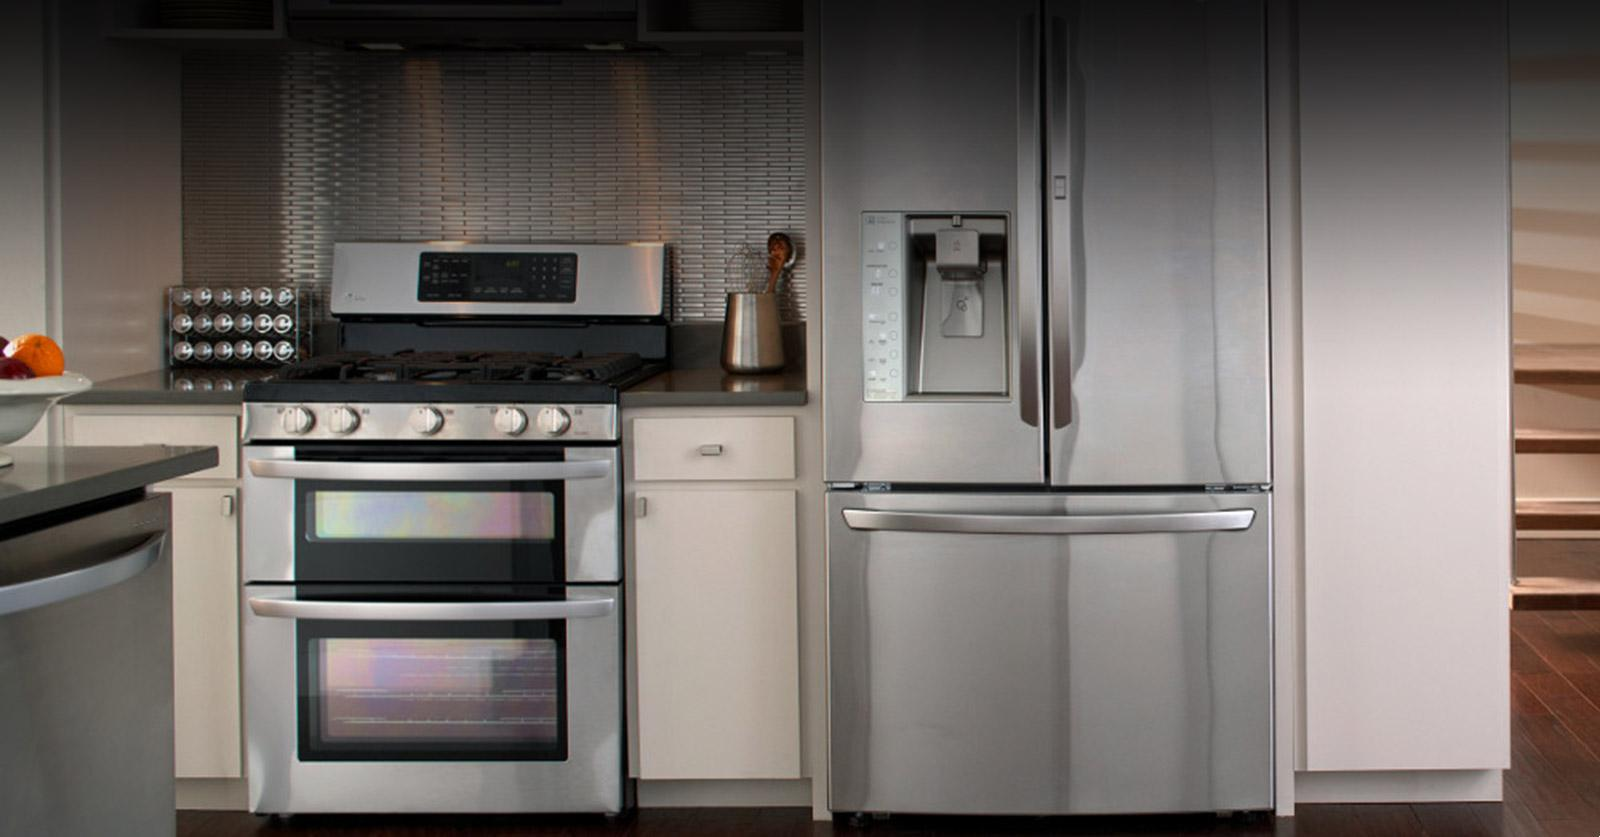 Front View Of An LG Refrigerator And An LG Oven.